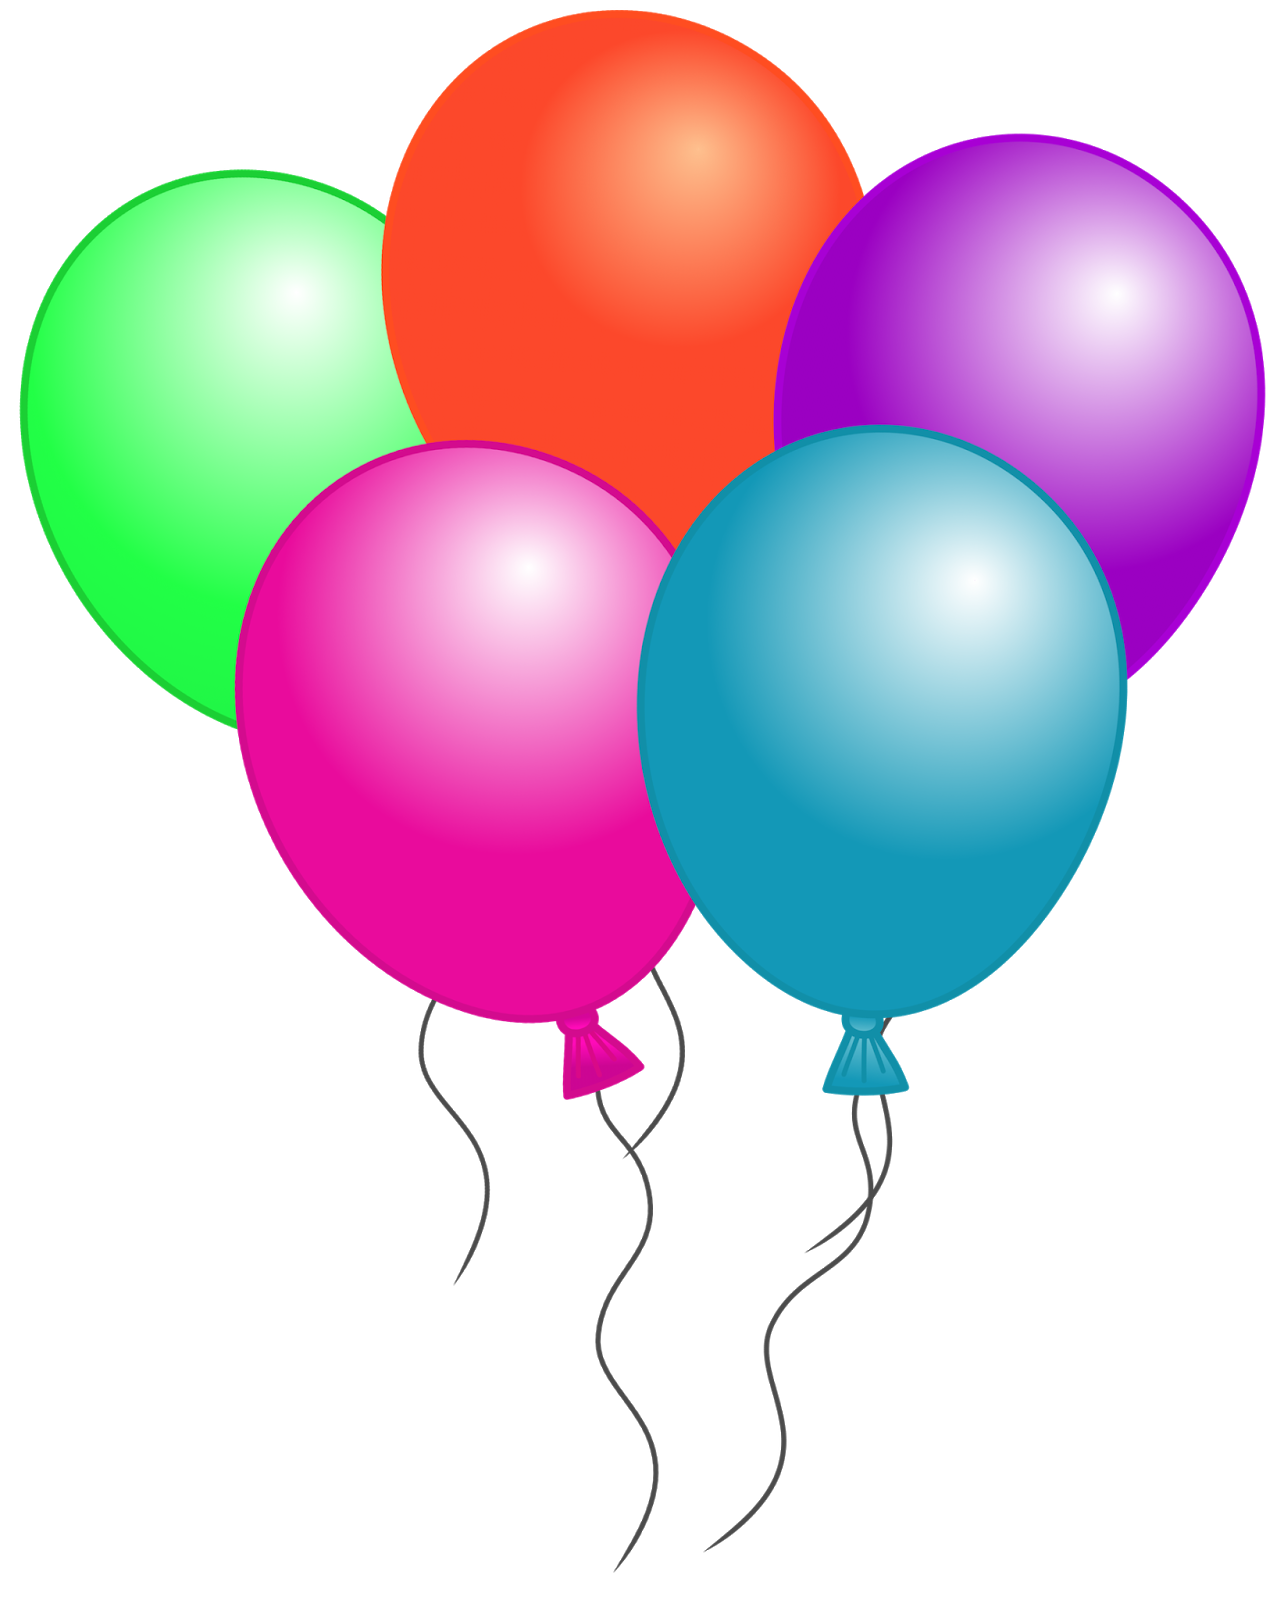 Image of Balloon Clip Art #296, Happy Birthday Clipart Holidays ...